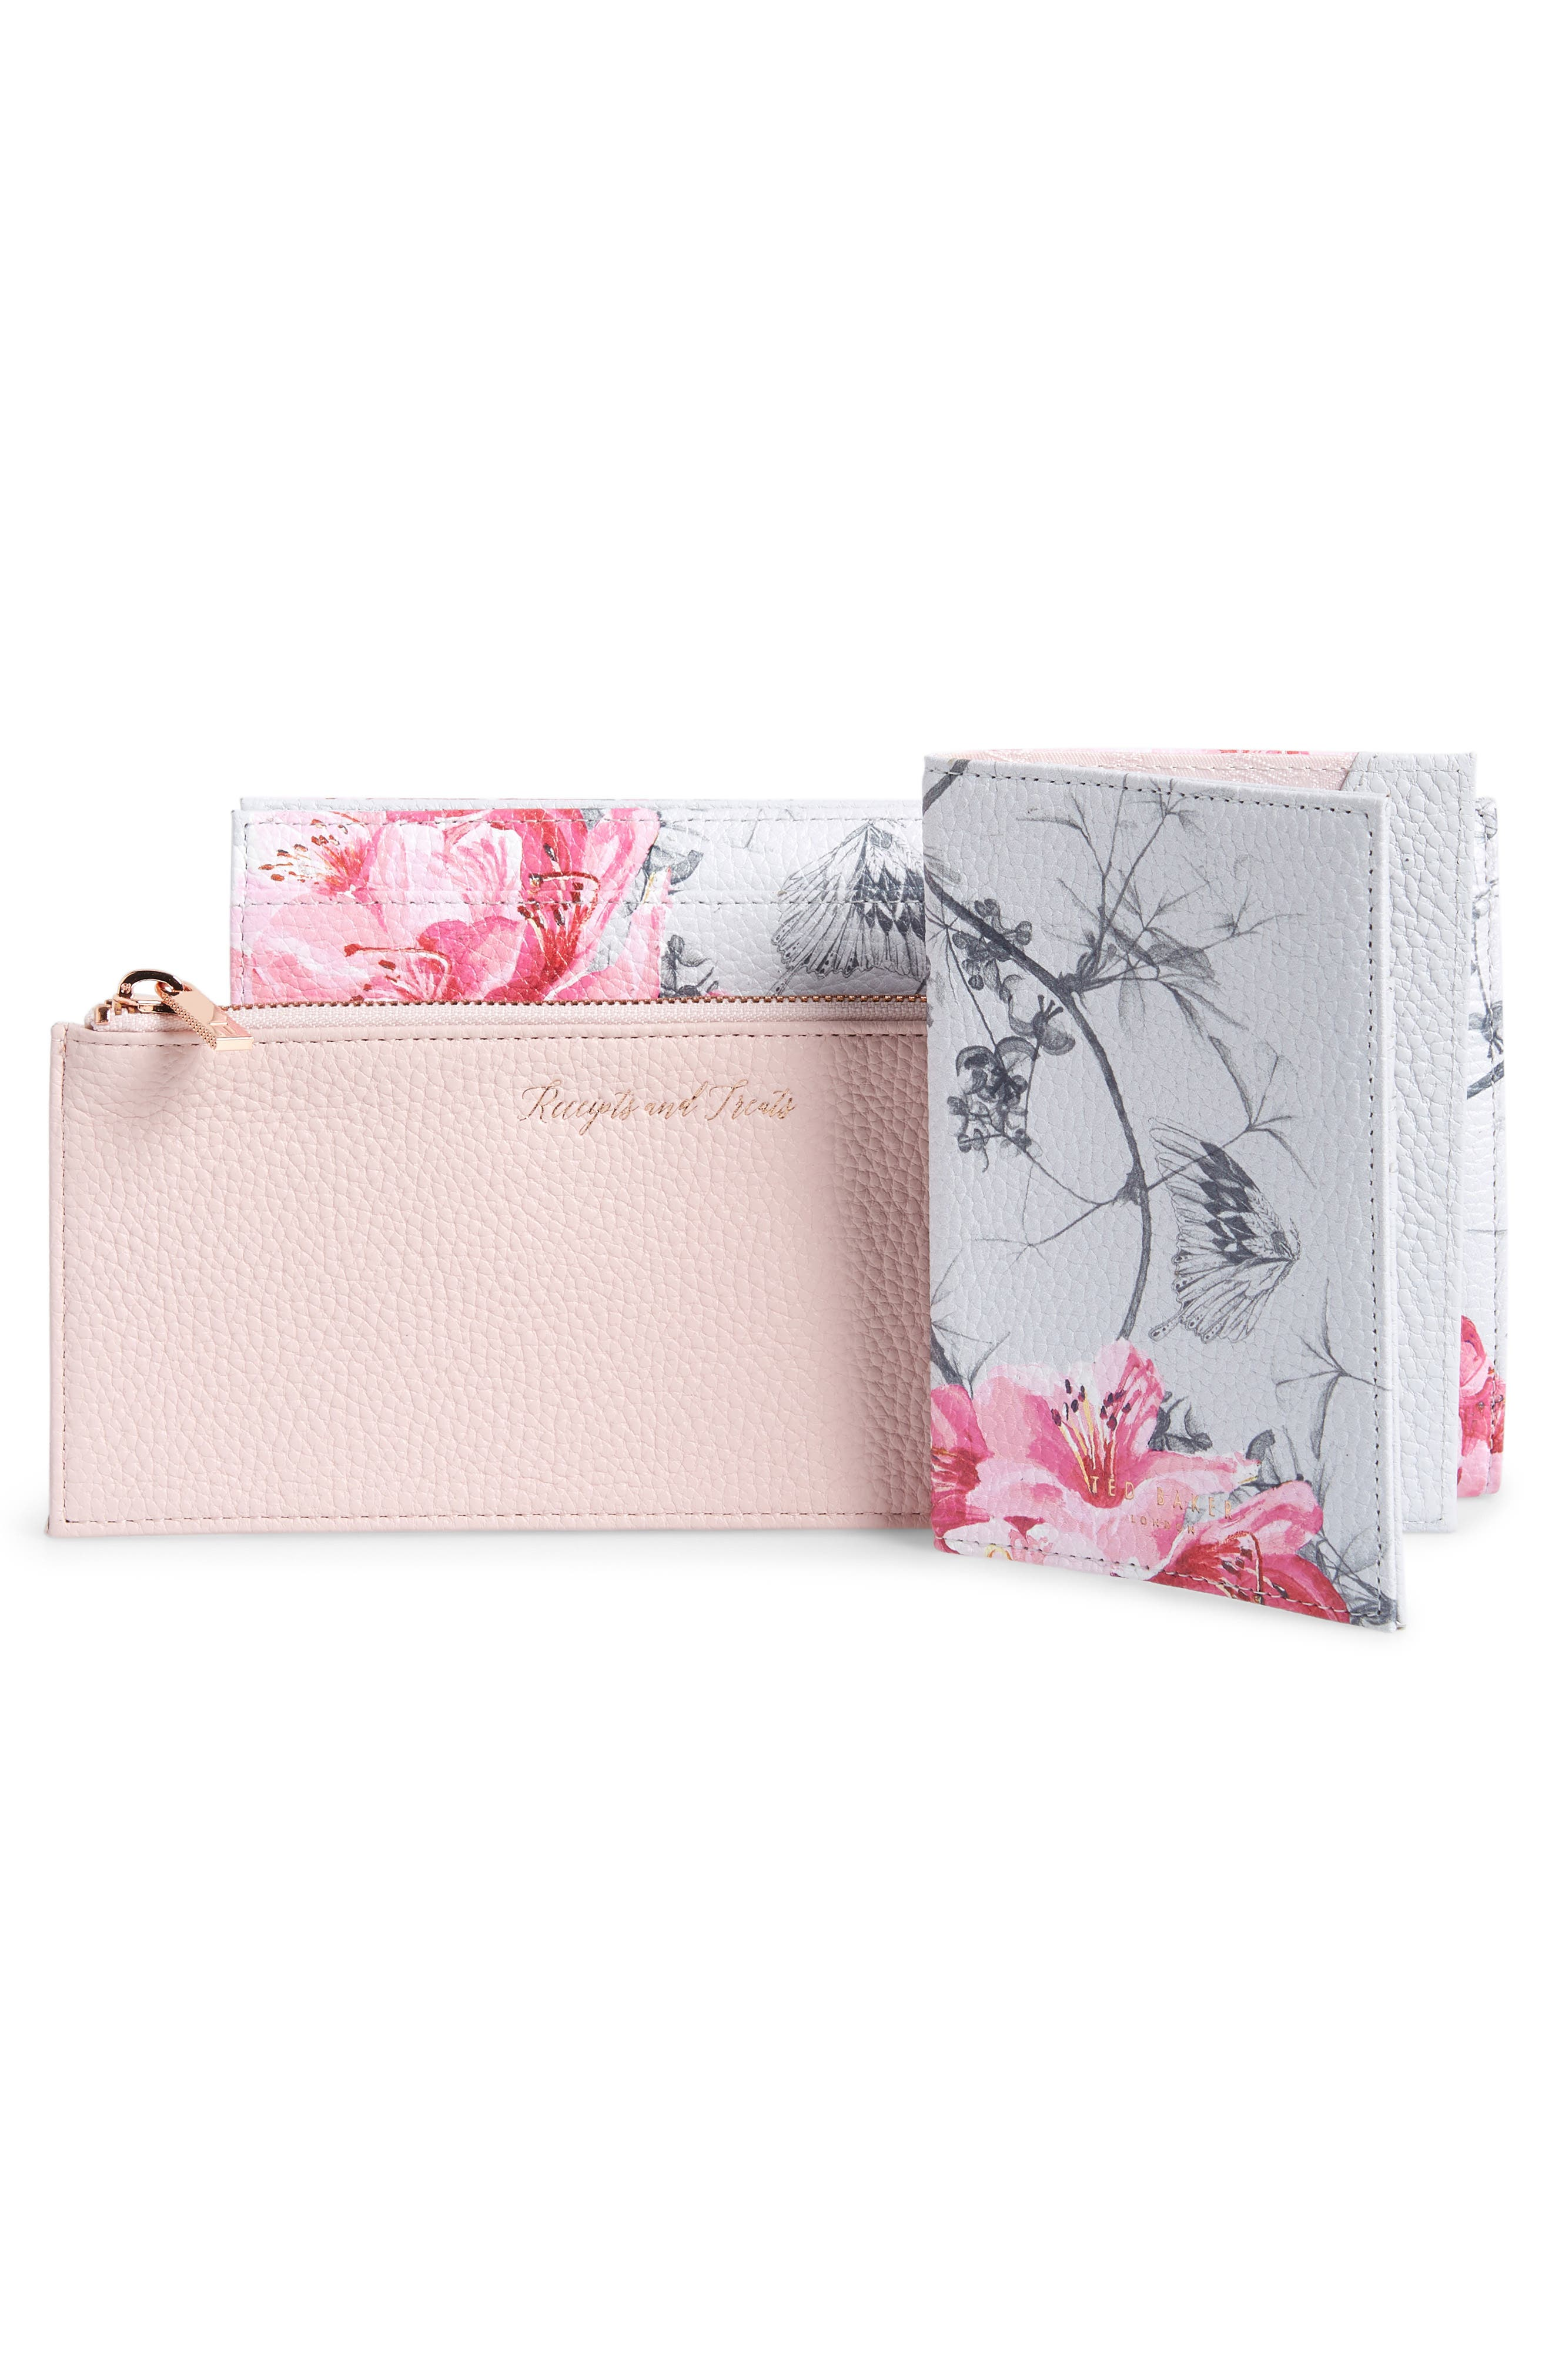 TED BAKER LONDON,                             Babylon Leather Travel Wallet,                             Alternate thumbnail 3, color,                             030